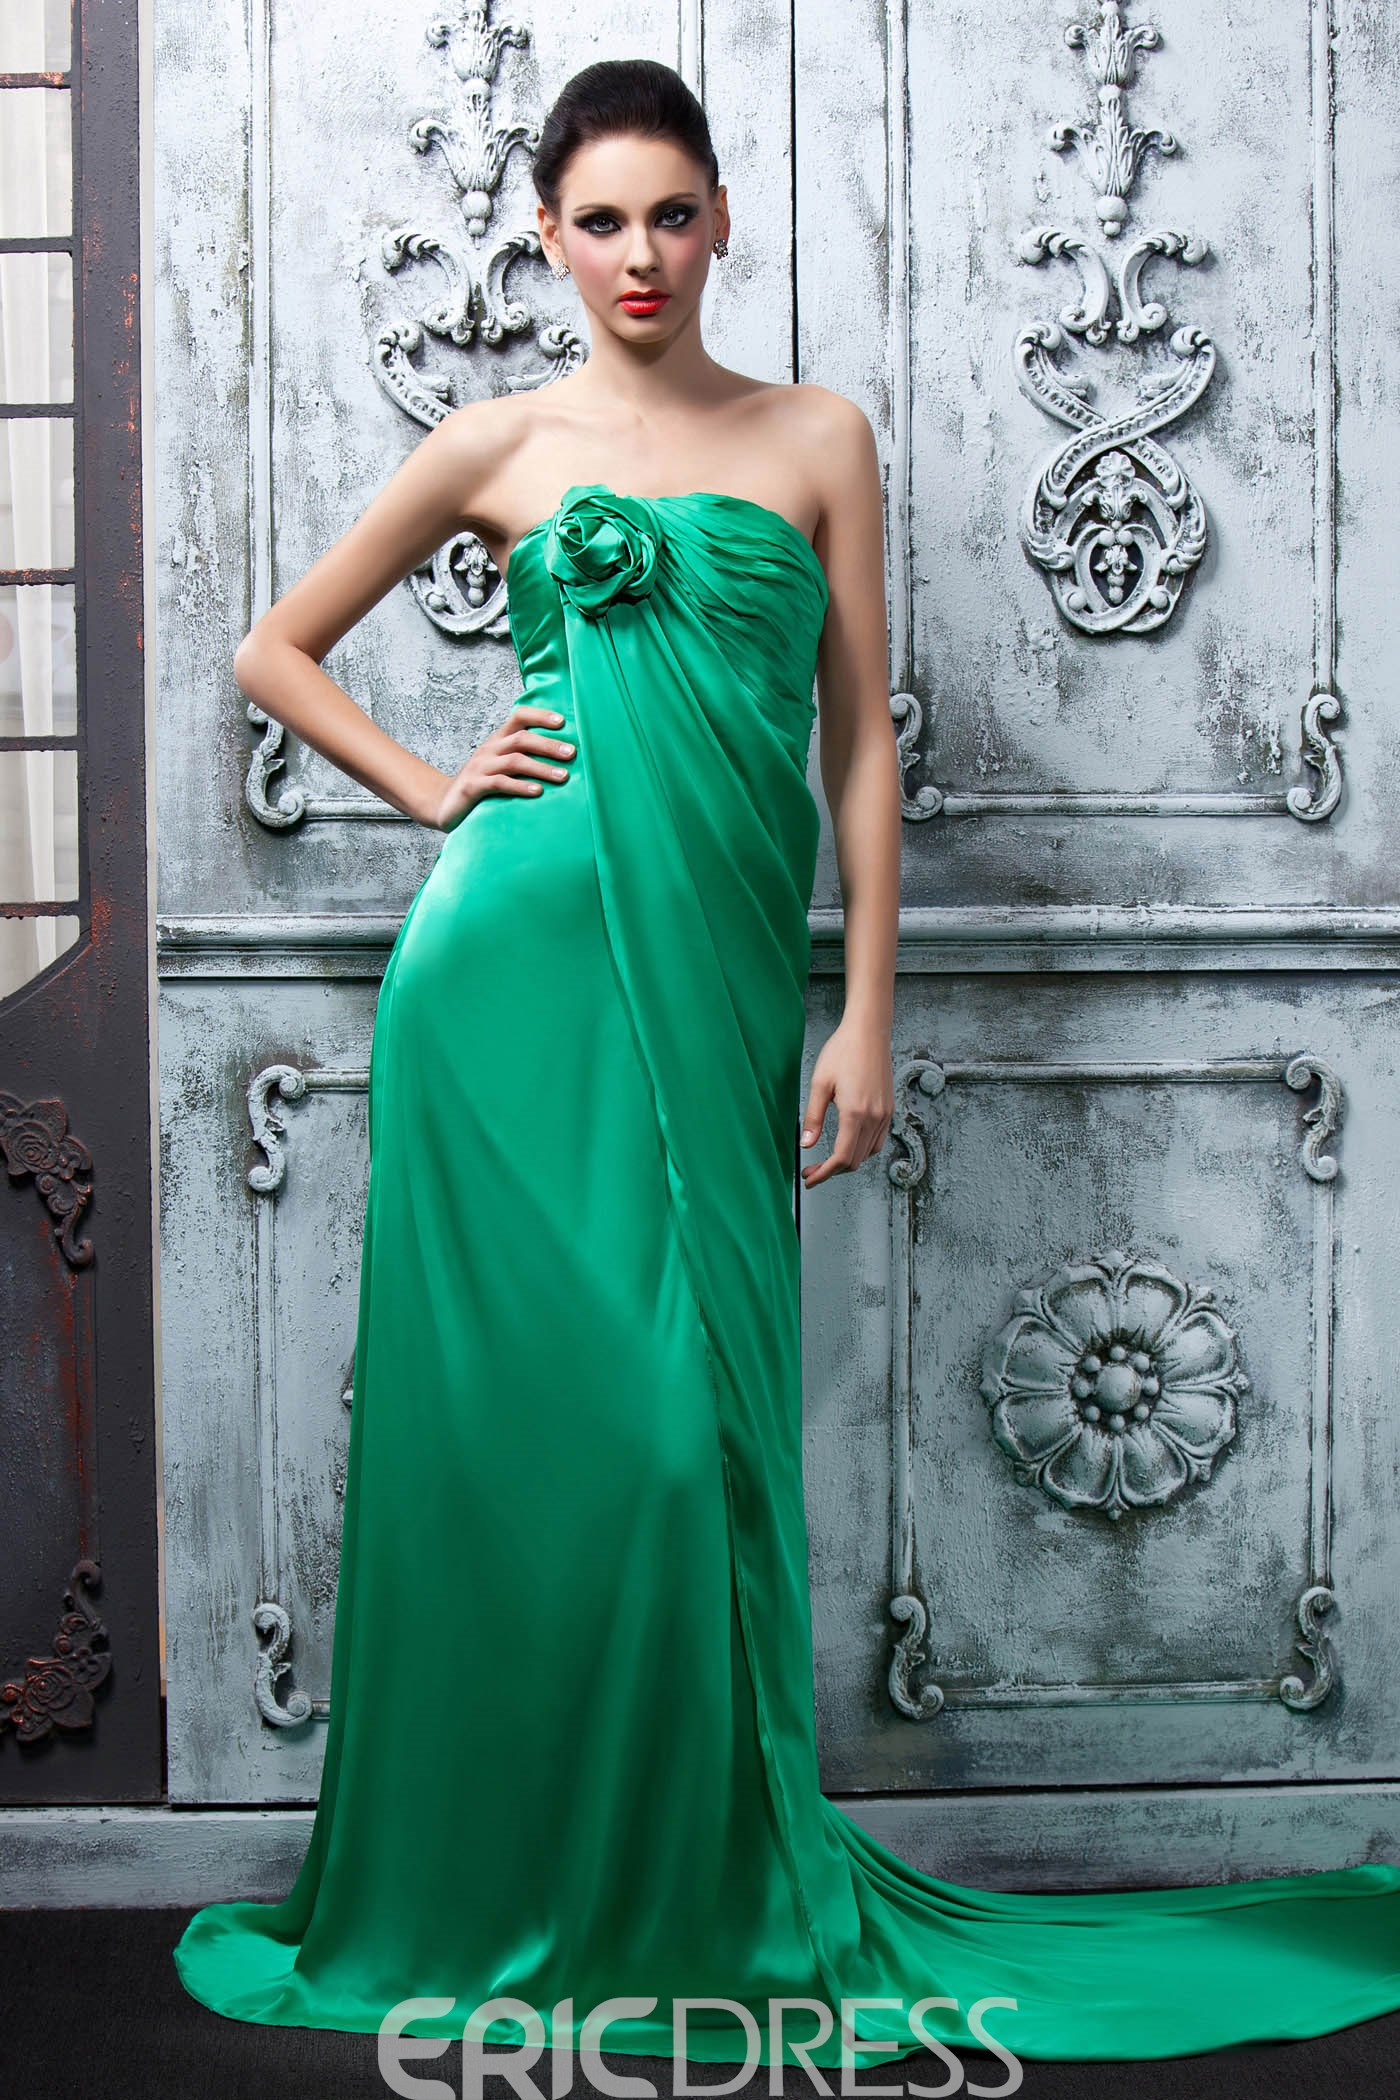 Faddish Ruched A-line Flower Court Train Strapless Polina's Bridesmaid Dress